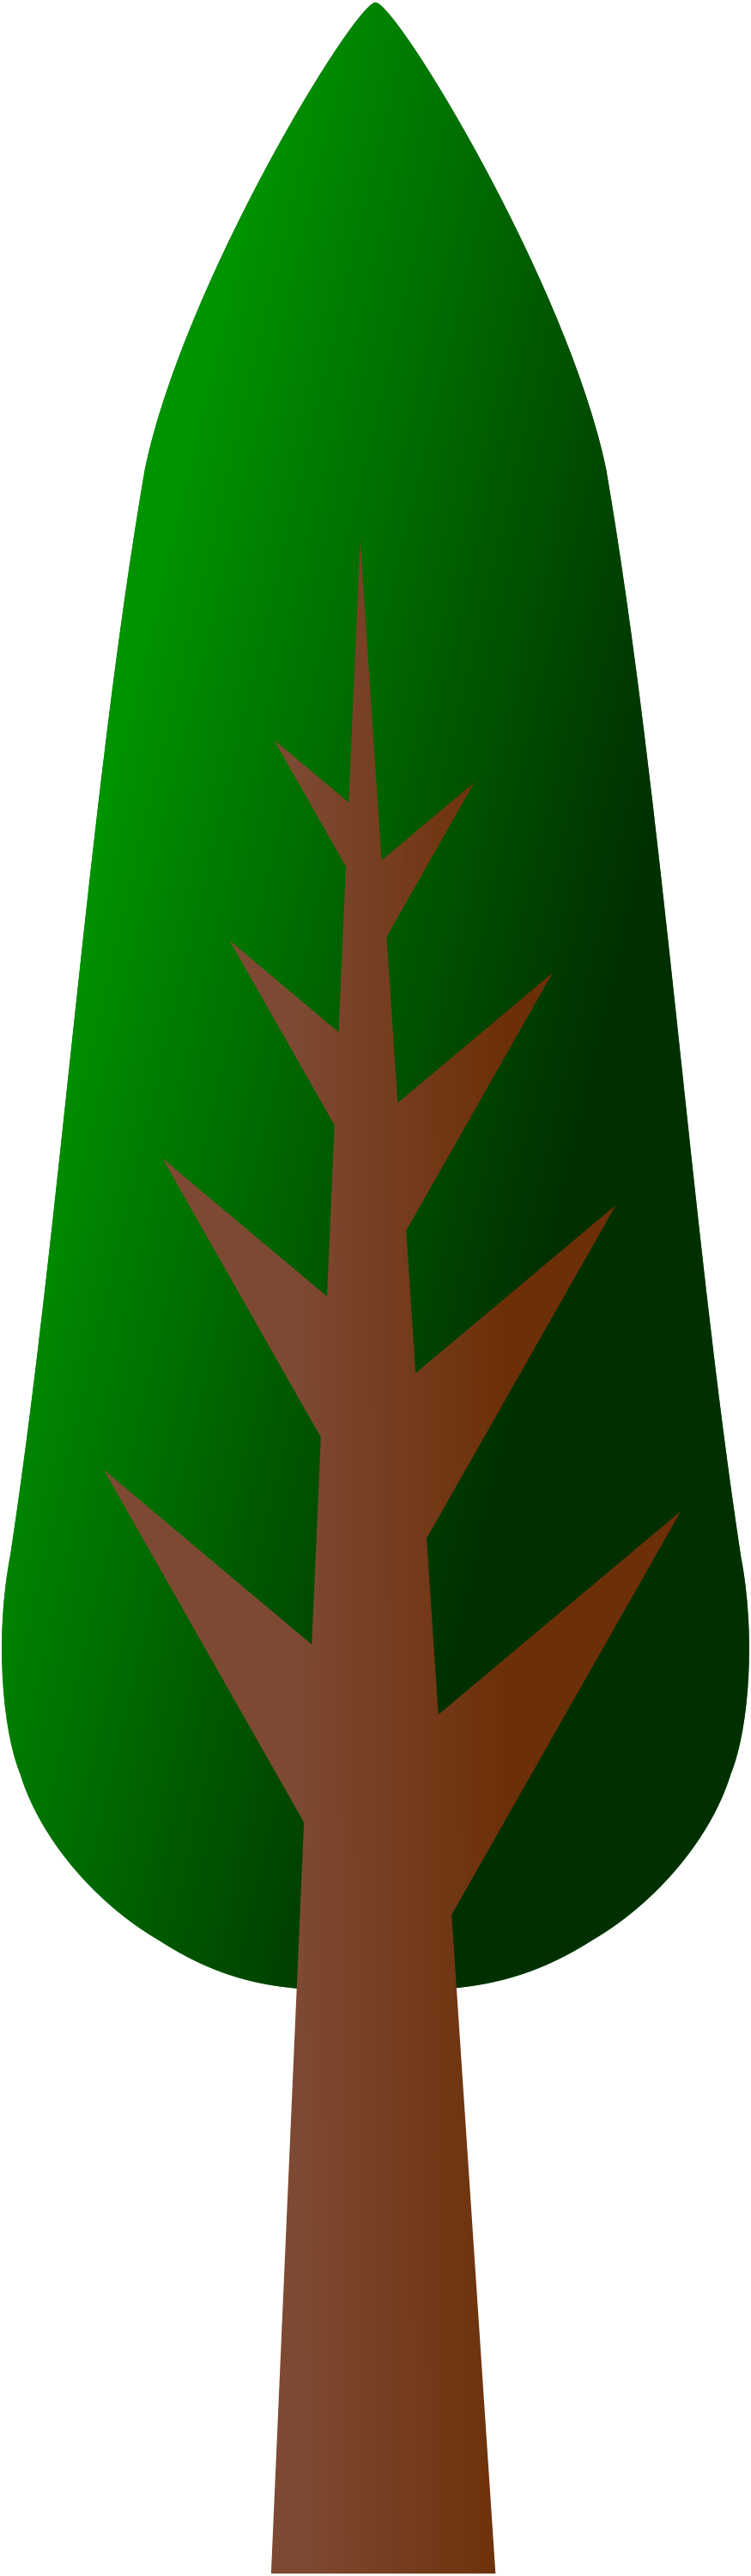 Forest Tree Clipart